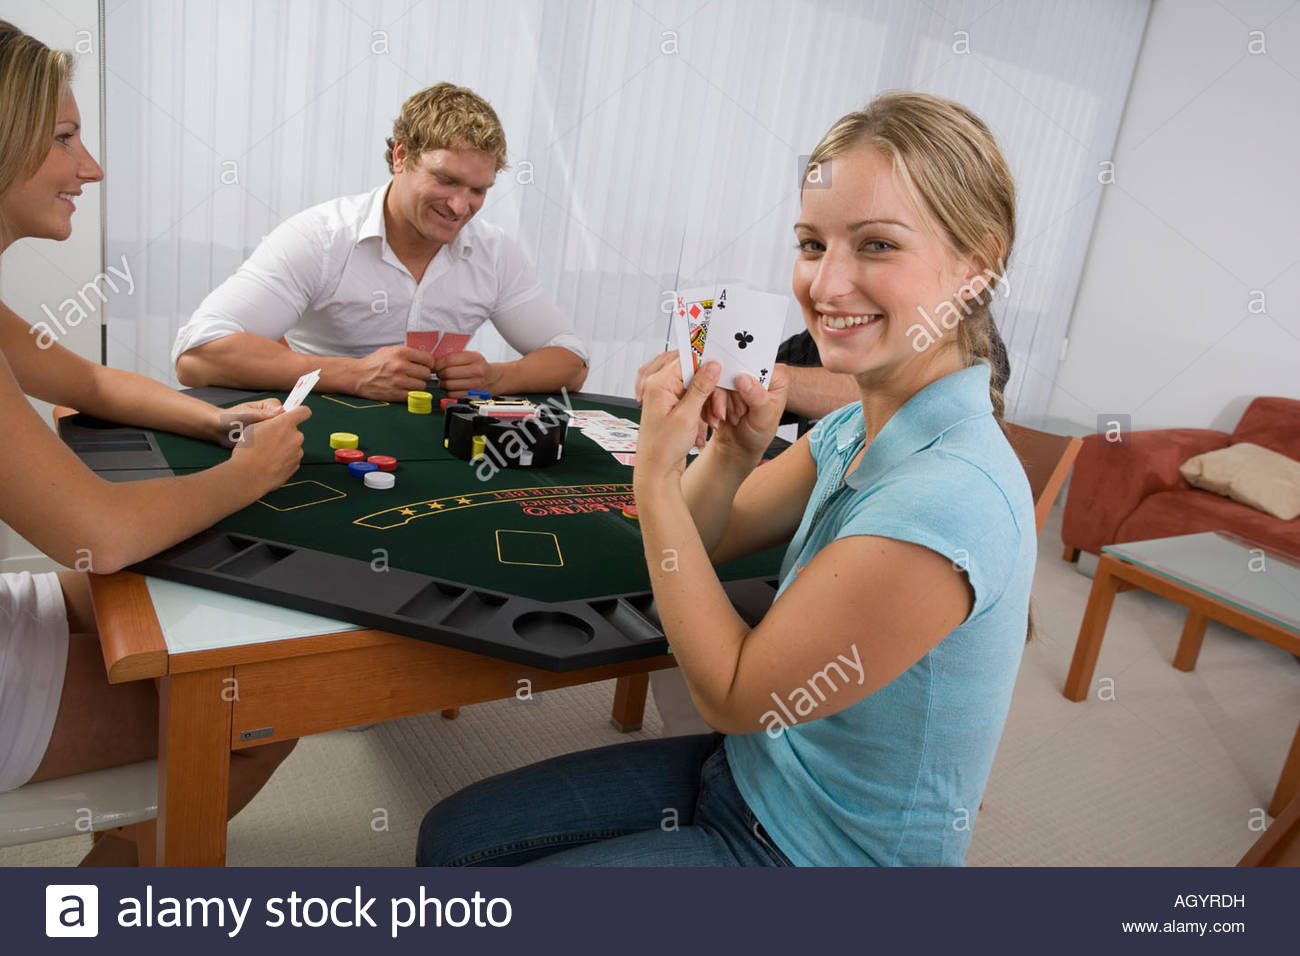 Woman revealing blackjack hand - Stock Image